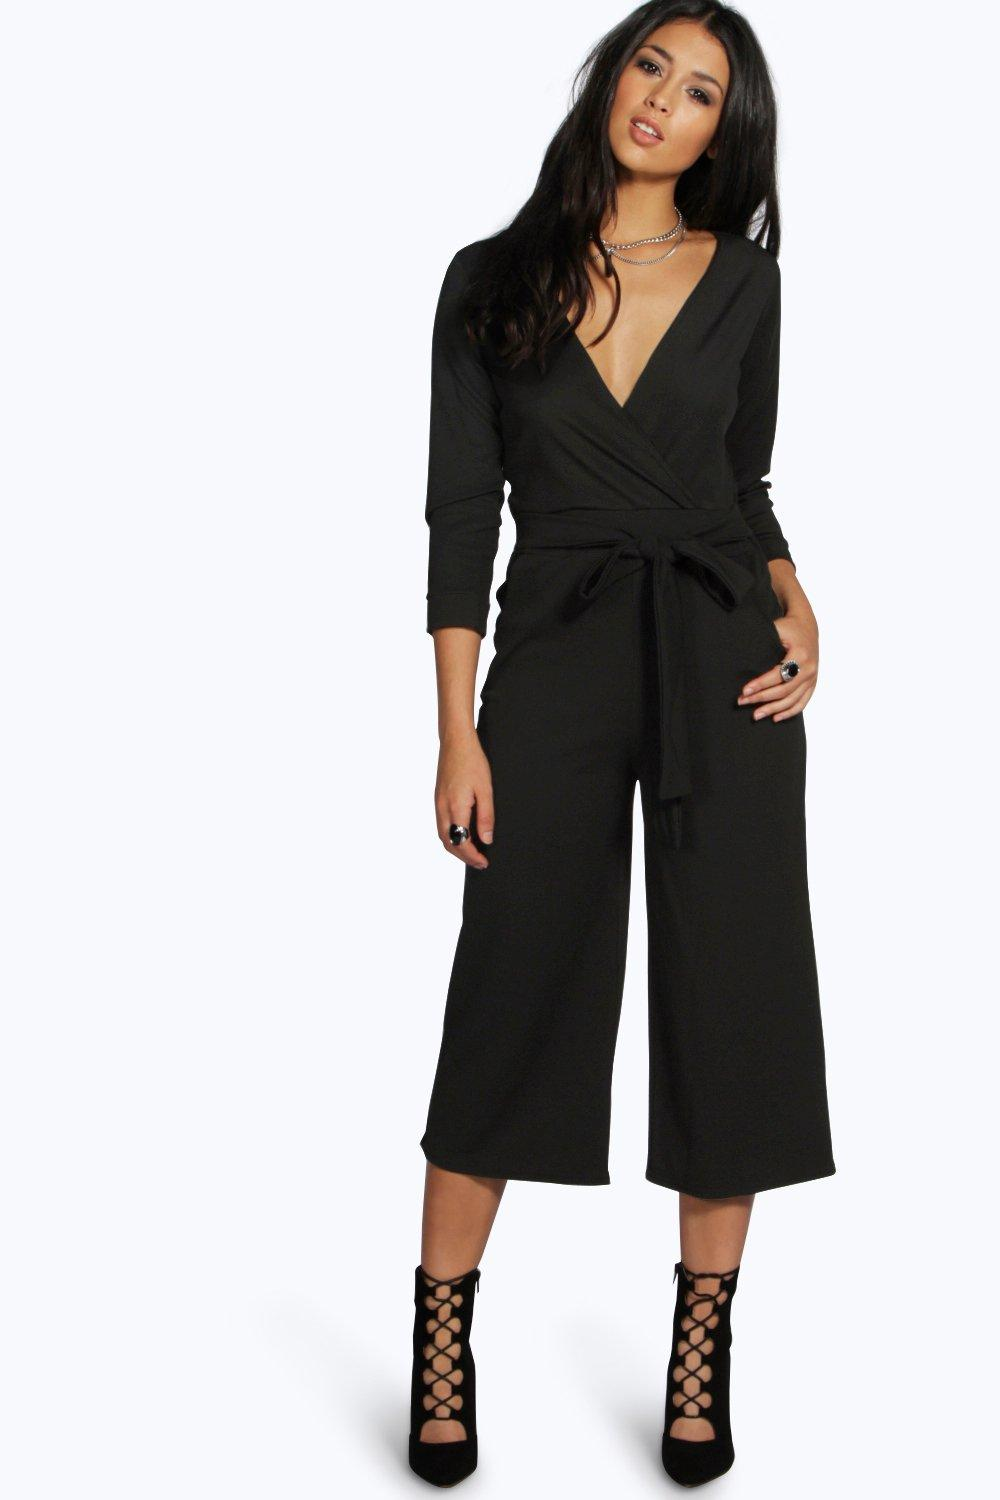 It may have started as a trend, but we think the jumpsuit is here to stay. This one-step outfit is the perfect alternative to dresses and skirts! Shop our favorite jumpsuits that range from casual to .